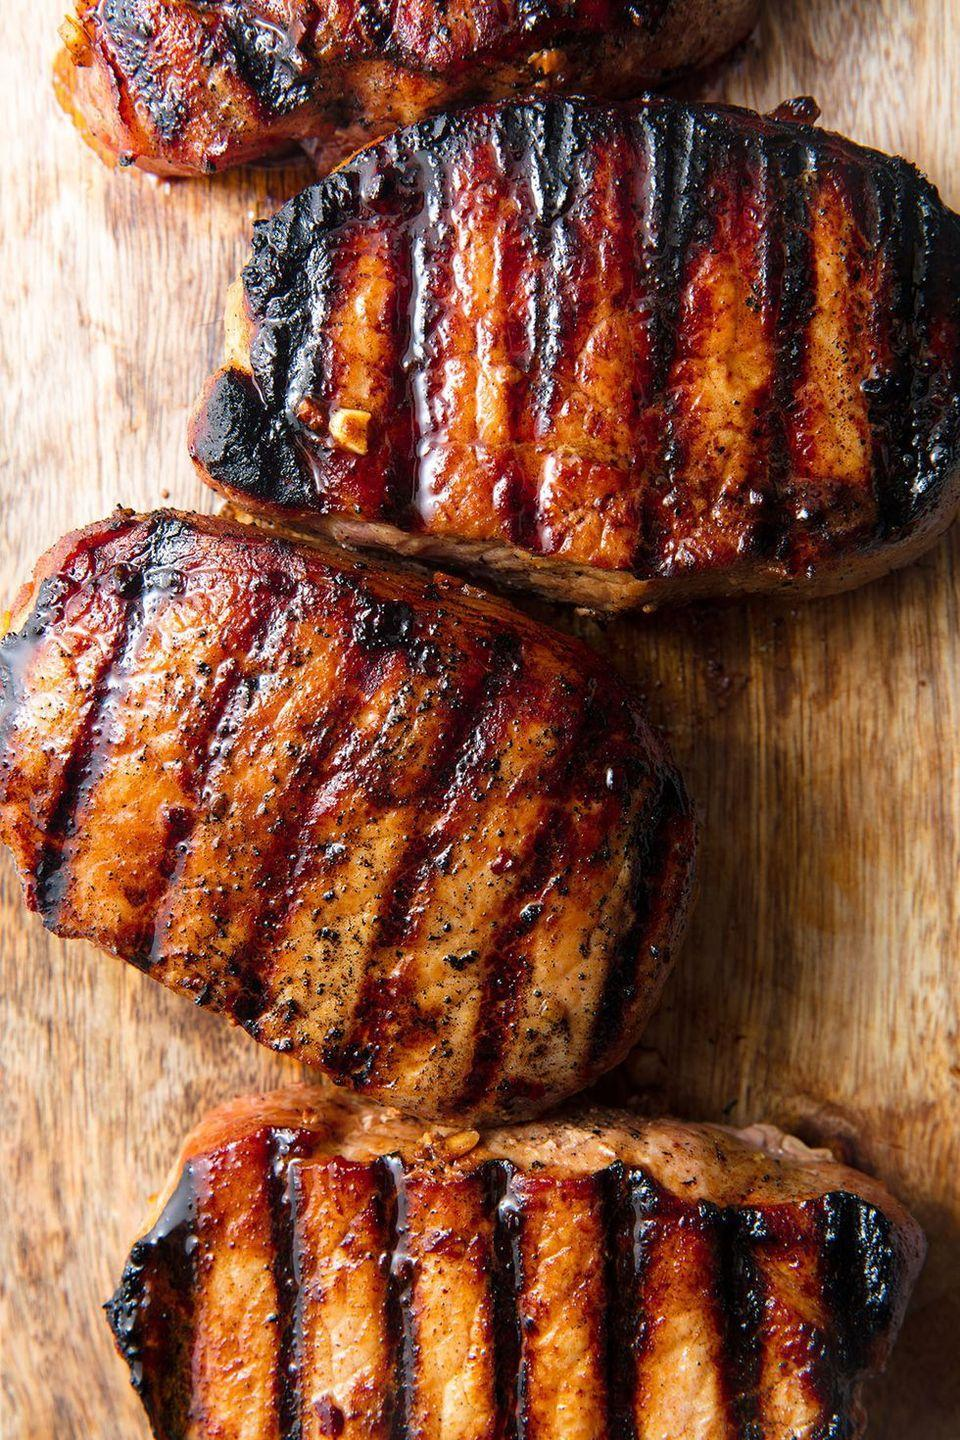 "<p>Fire up the grill. </p><p>Get the recipe from <a href=""https://www.delish.com/cooking/recipe-ideas/a19665822/best-grilled-pork-chops-recipe/"" rel=""nofollow noopener"" target=""_blank"" data-ylk=""slk:Delish"" class=""link rapid-noclick-resp"">Delish</a>. </p>"